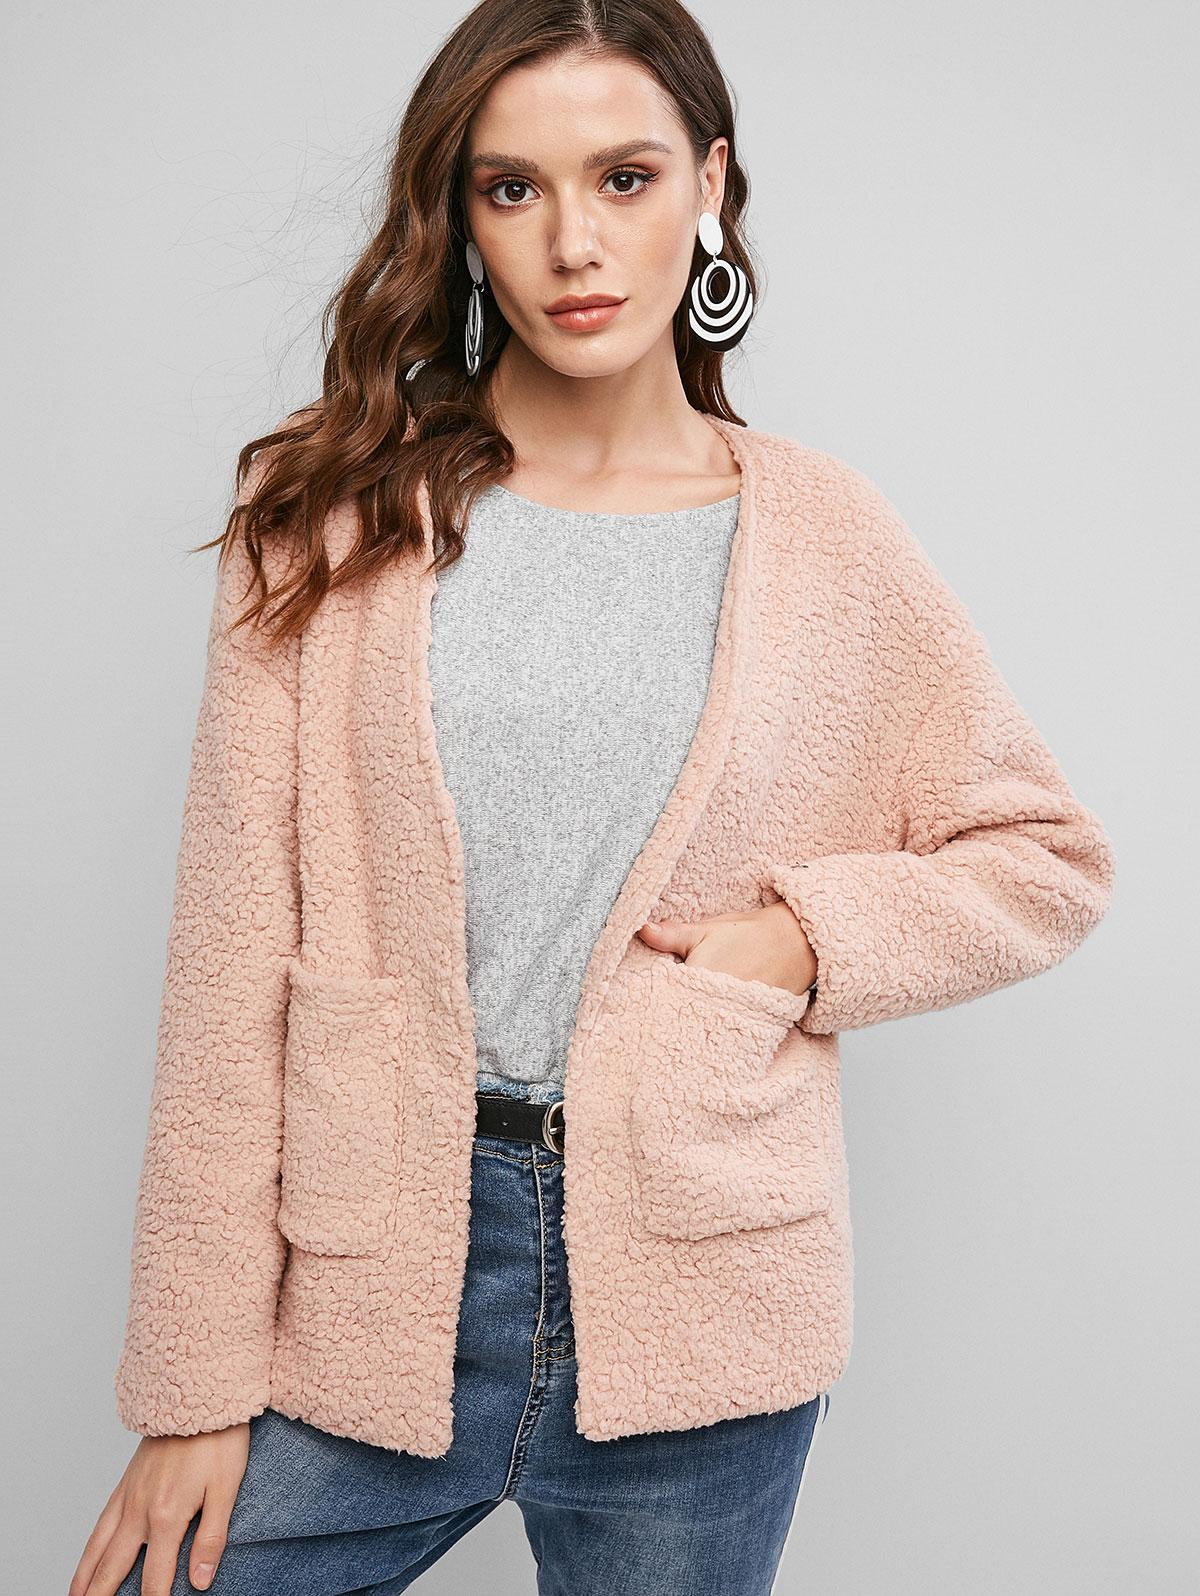 ZAFUL Faux Shearling Teddy Pocket Drop Shoulder Coat